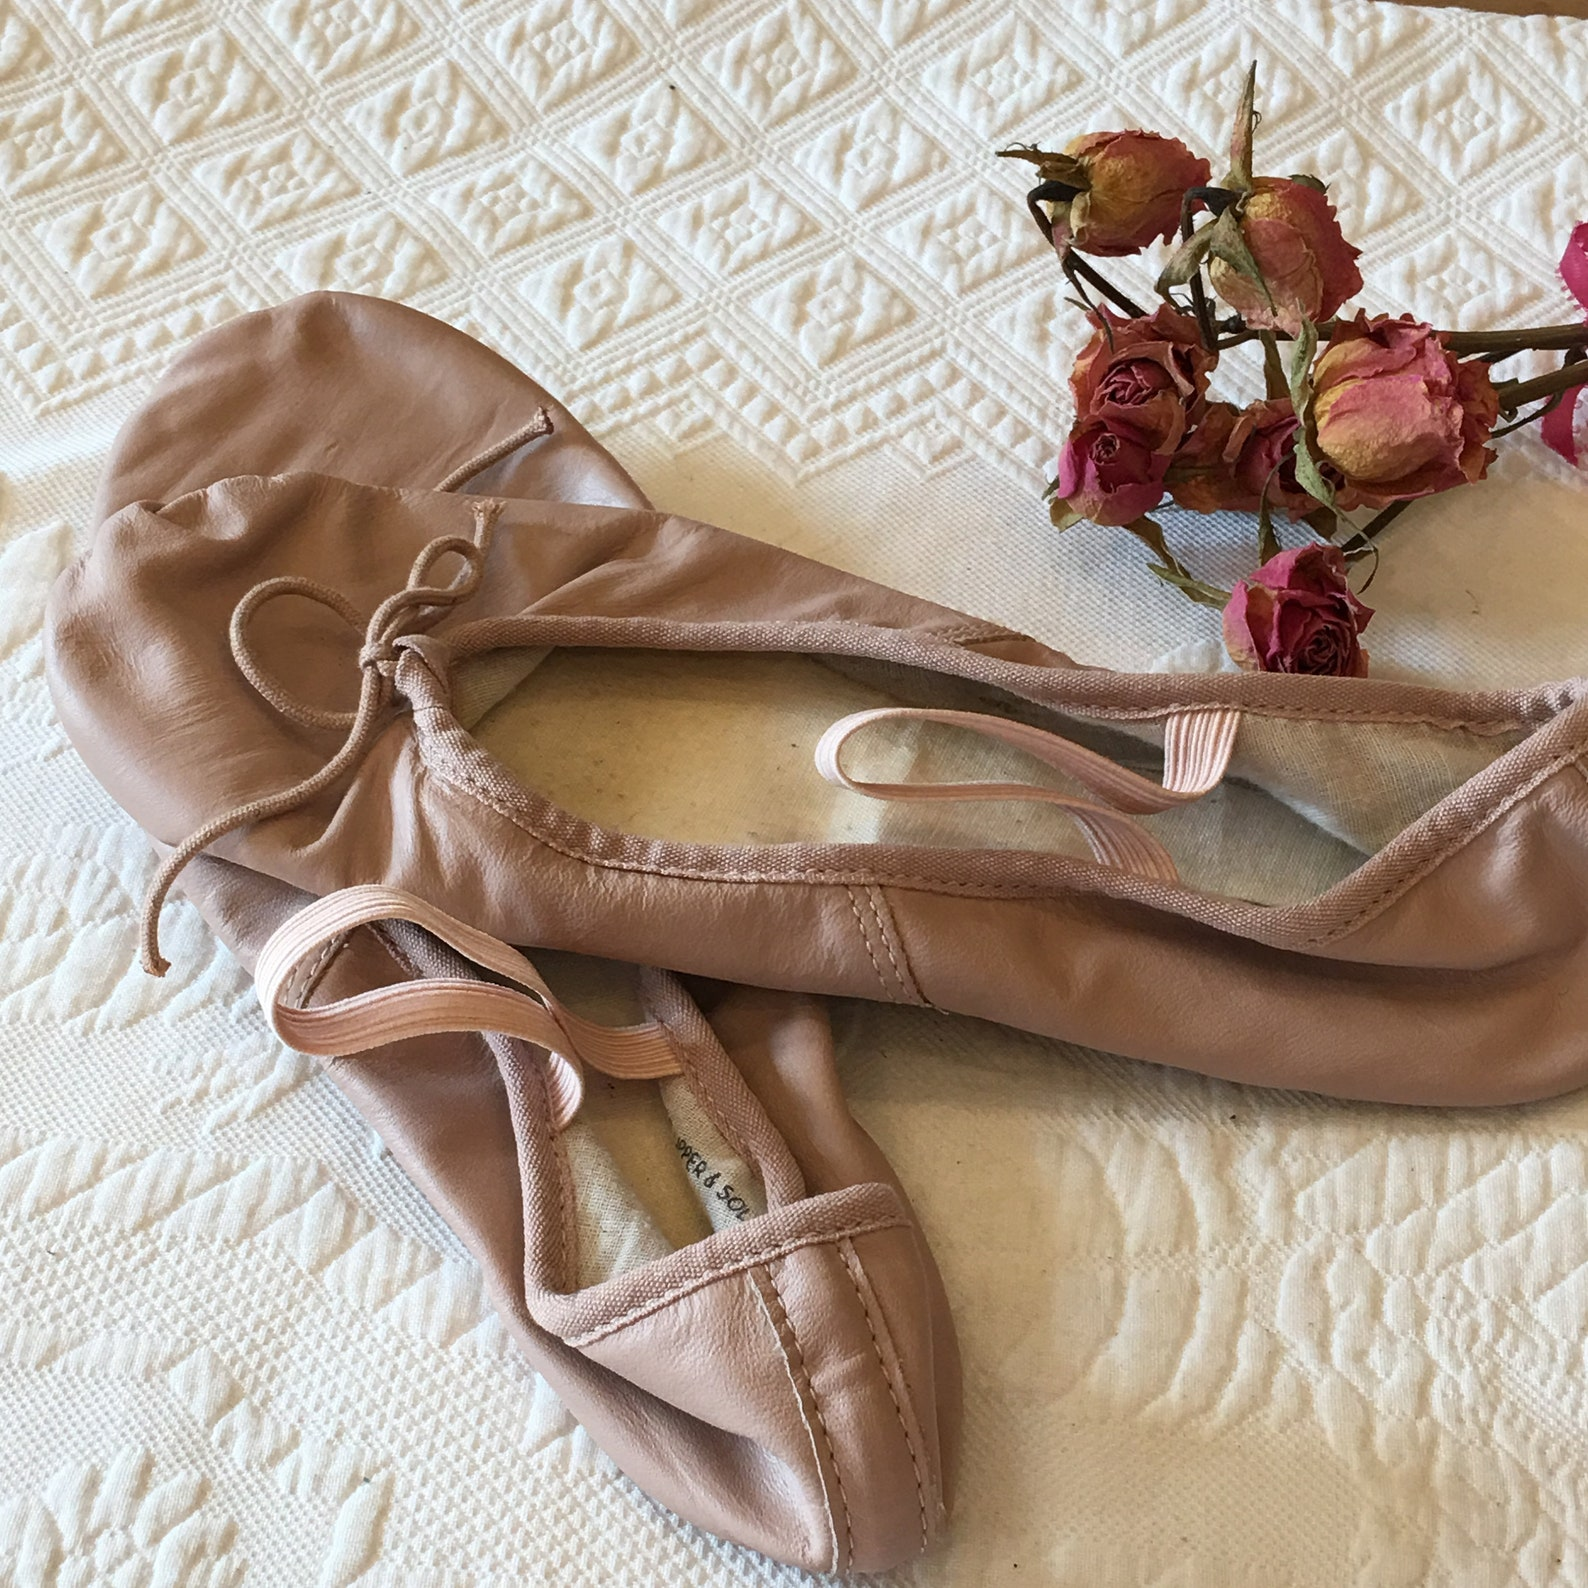 vintage pink ballet shoes size 8 1/2. leather upper and sole 8 1/2 c pink ballet shoes. not too worn. ballet dancers shoes